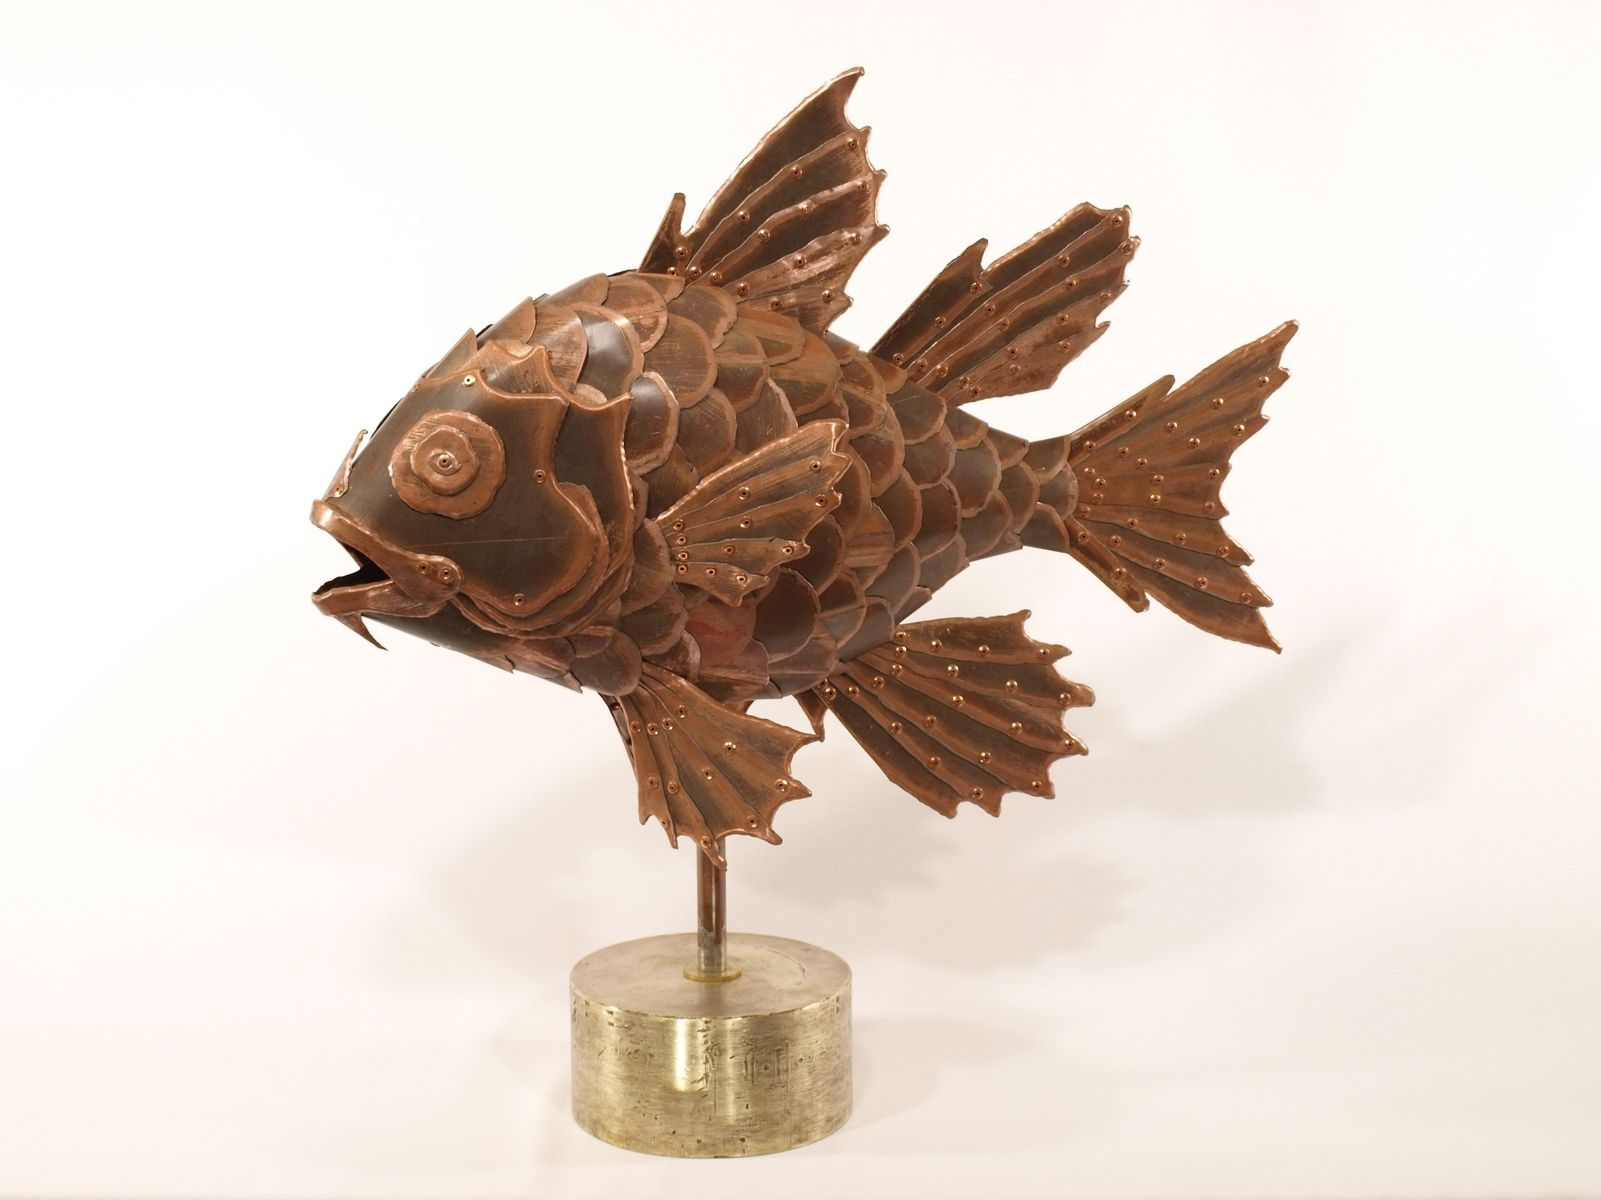 Hand Made Copper Fish Sculpture Pajama Cardinalfish By